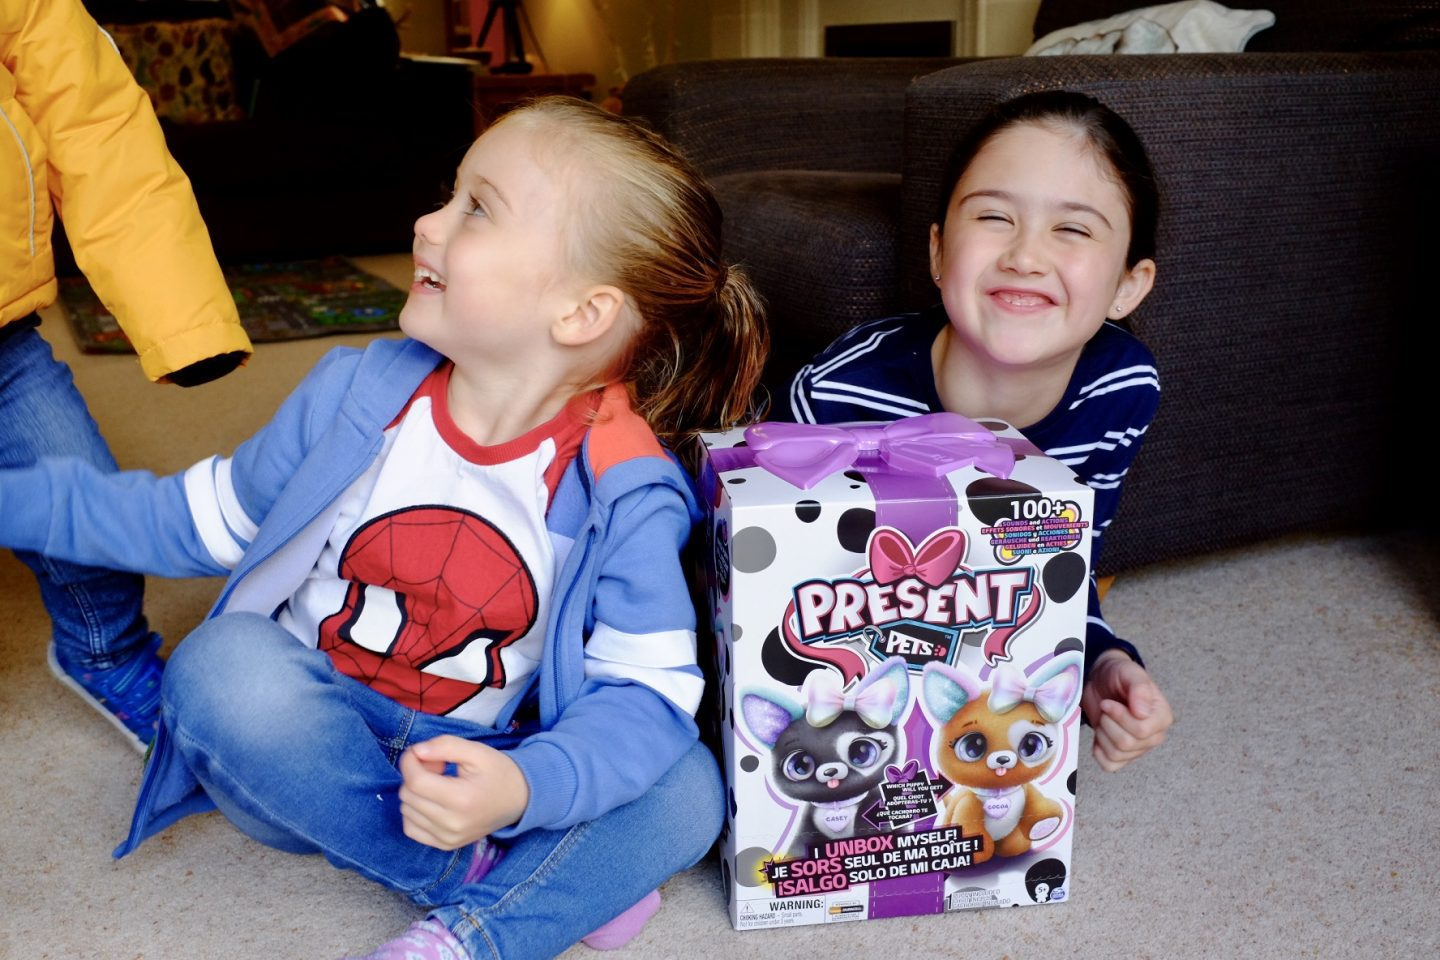 Kids waiting to unbox present pets